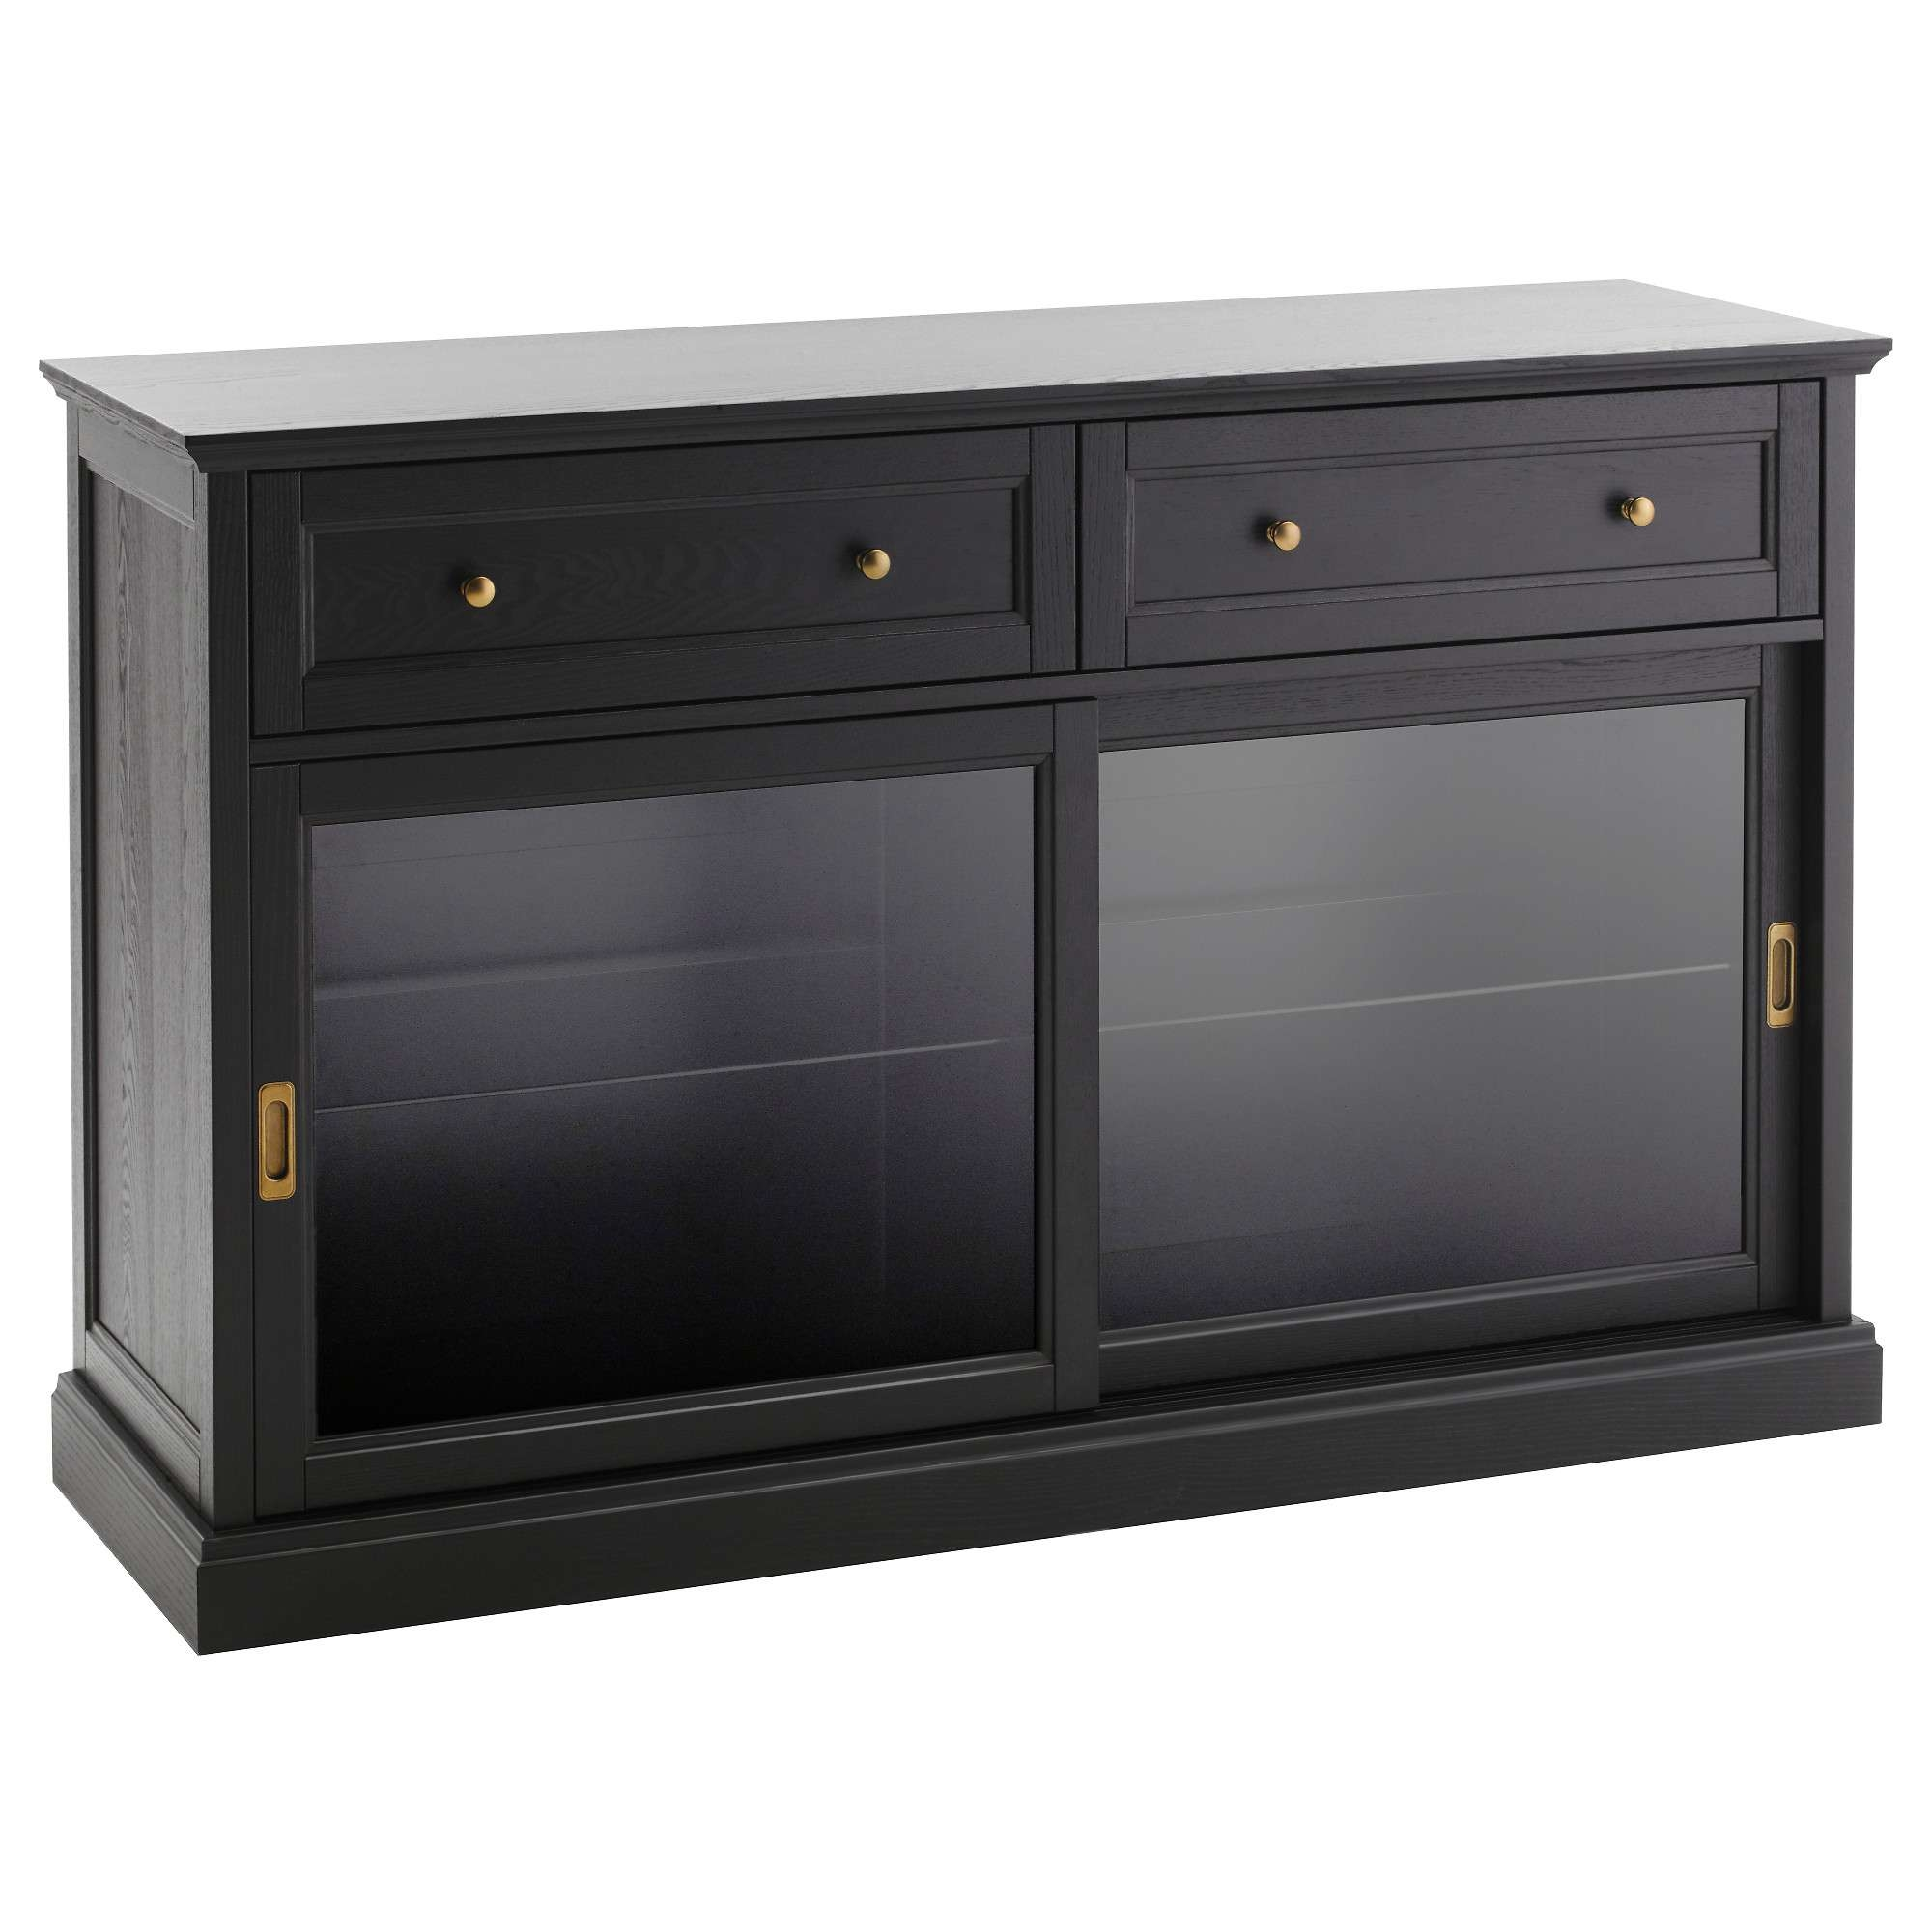 Unique Black Sideboard Buffet – Bjdgjy Within Unique Sideboards And Buffets (View 15 of 20)